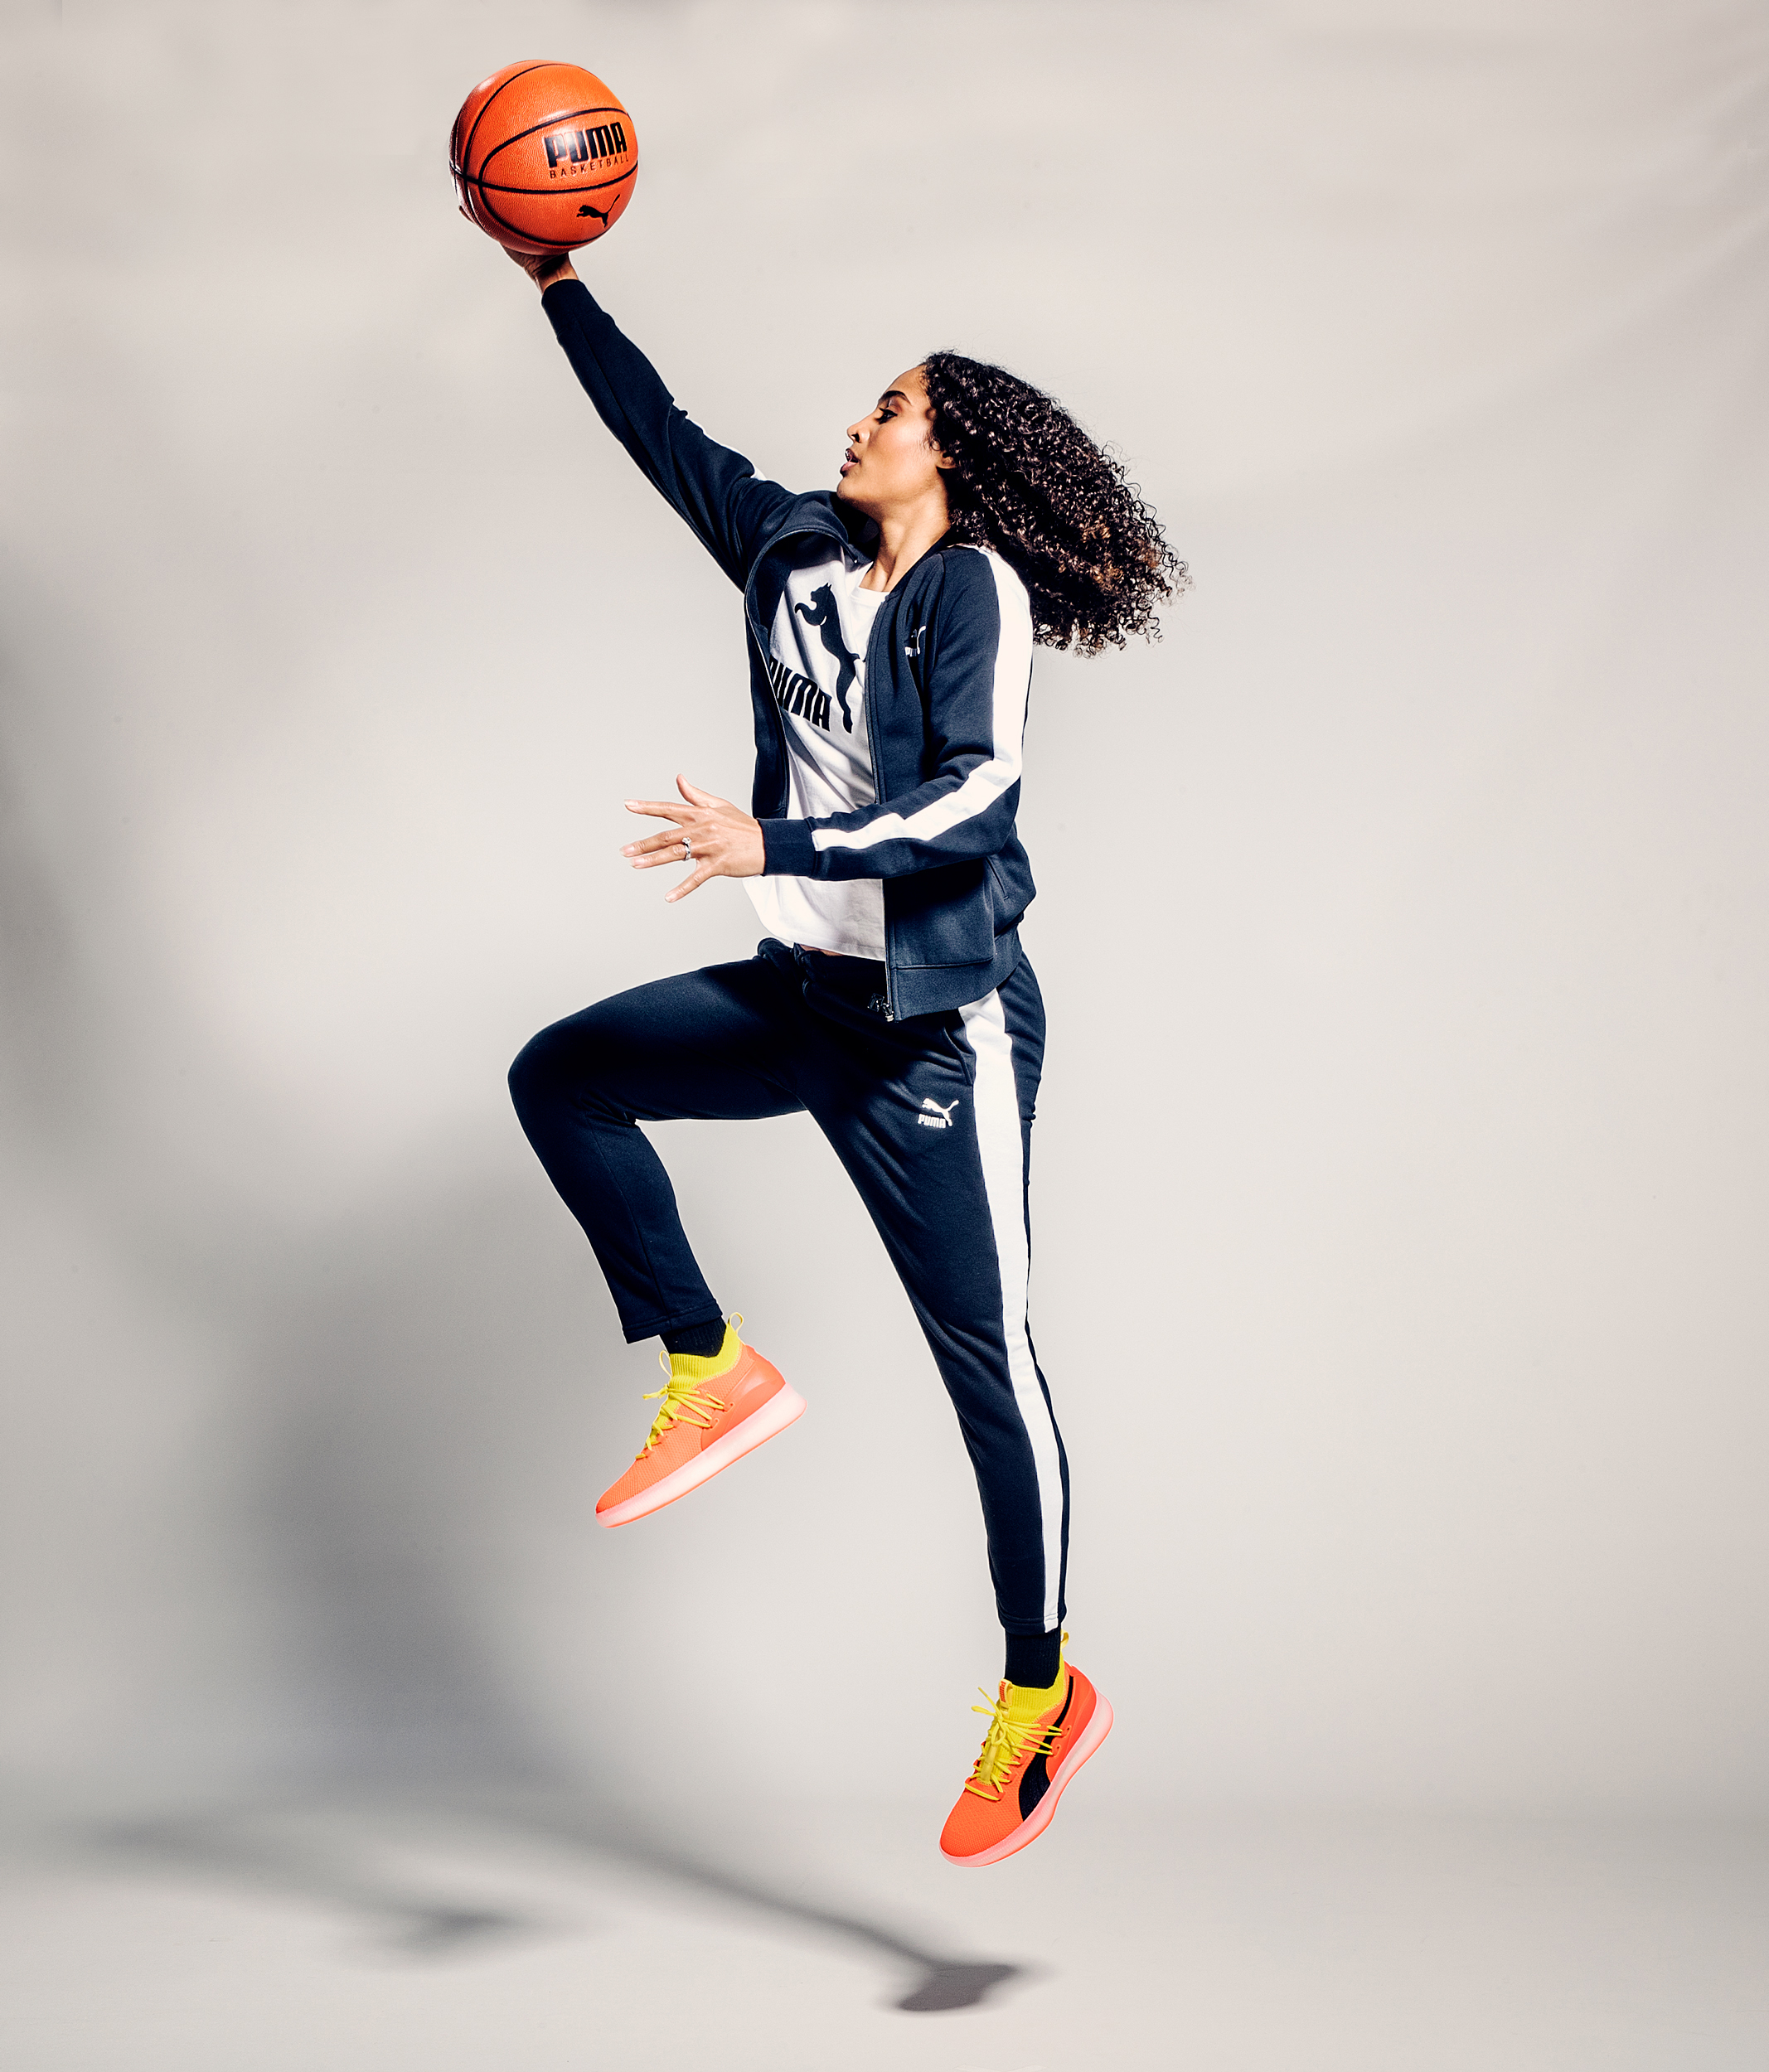 Salafia_18AW_xBB_Skylar_Diggins_Smith_2_4864_RGB